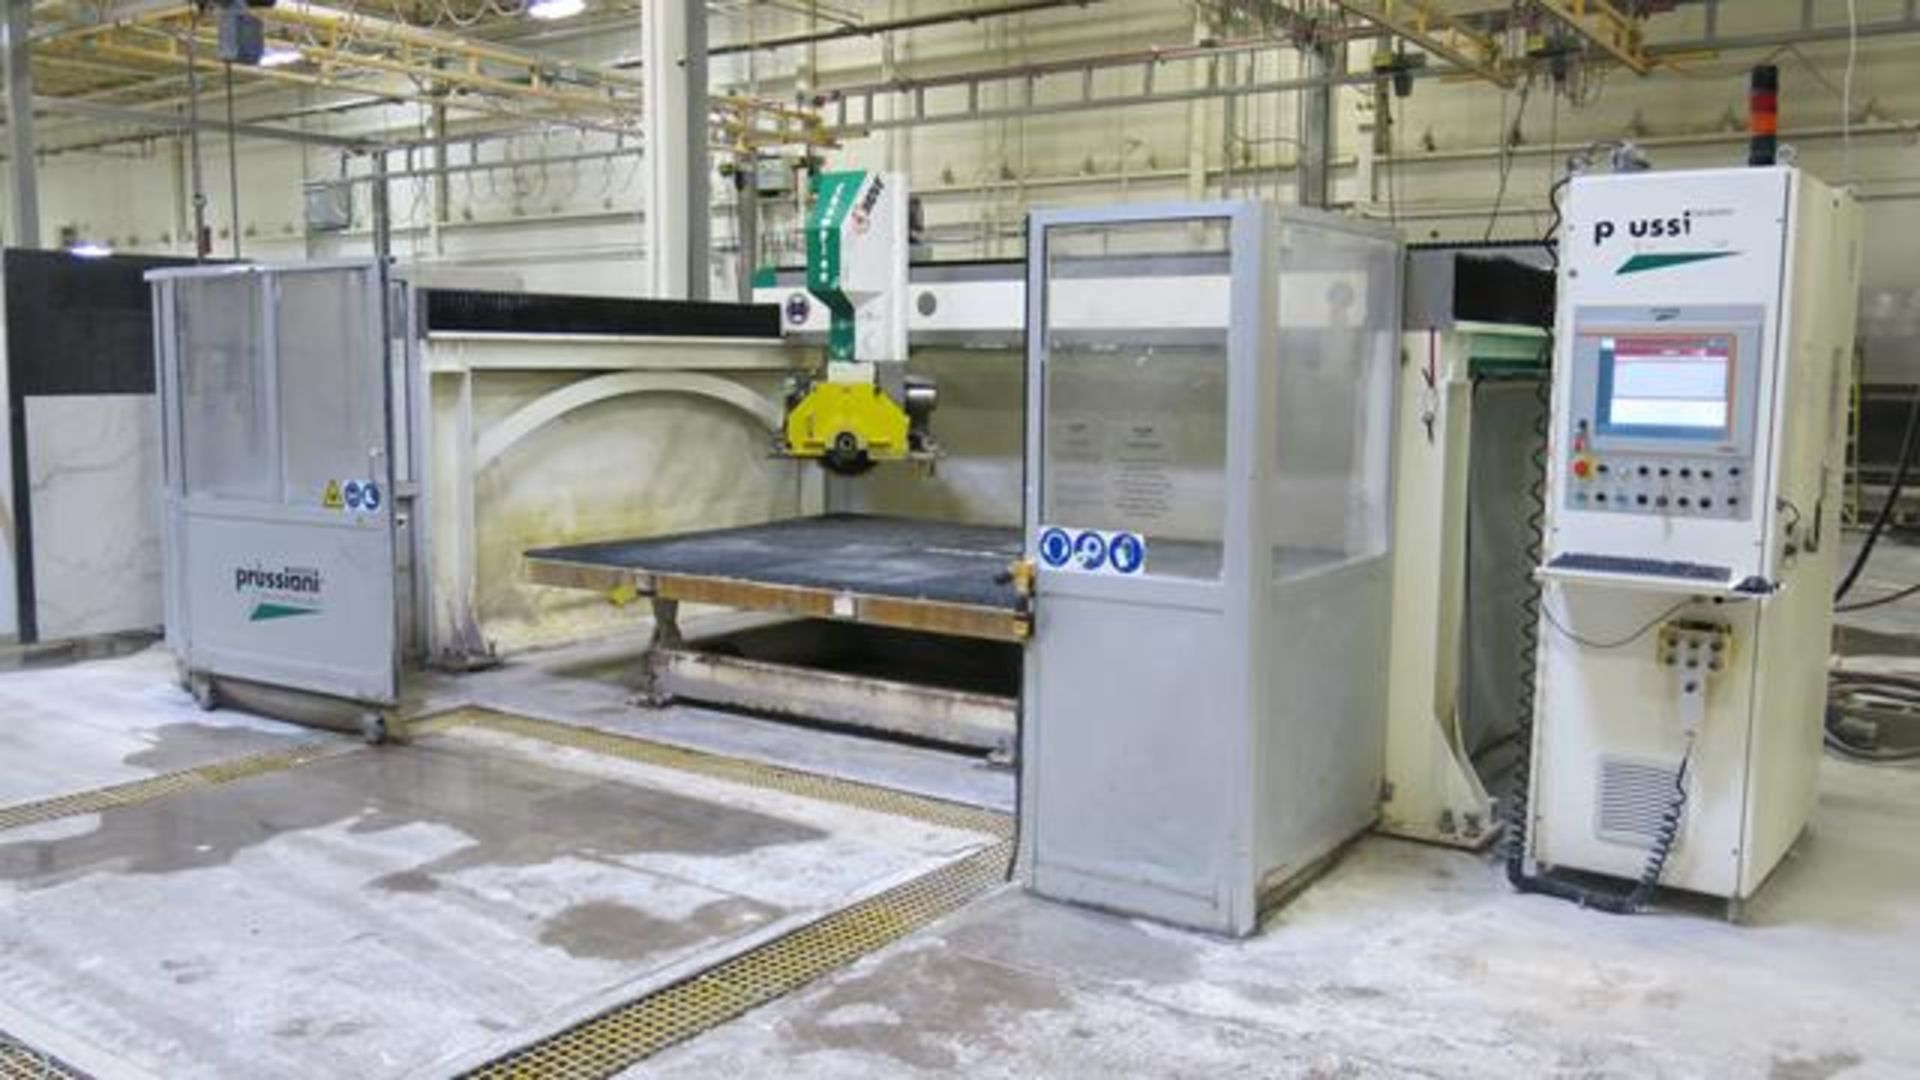 Lot 220 - PRUSSIANI, CHAMPION 60, CH60 TAG, CNC 5-AXIS, BRIDGE SAW, 25' X 35', 3,593 HOURS, S.N 685, 2014